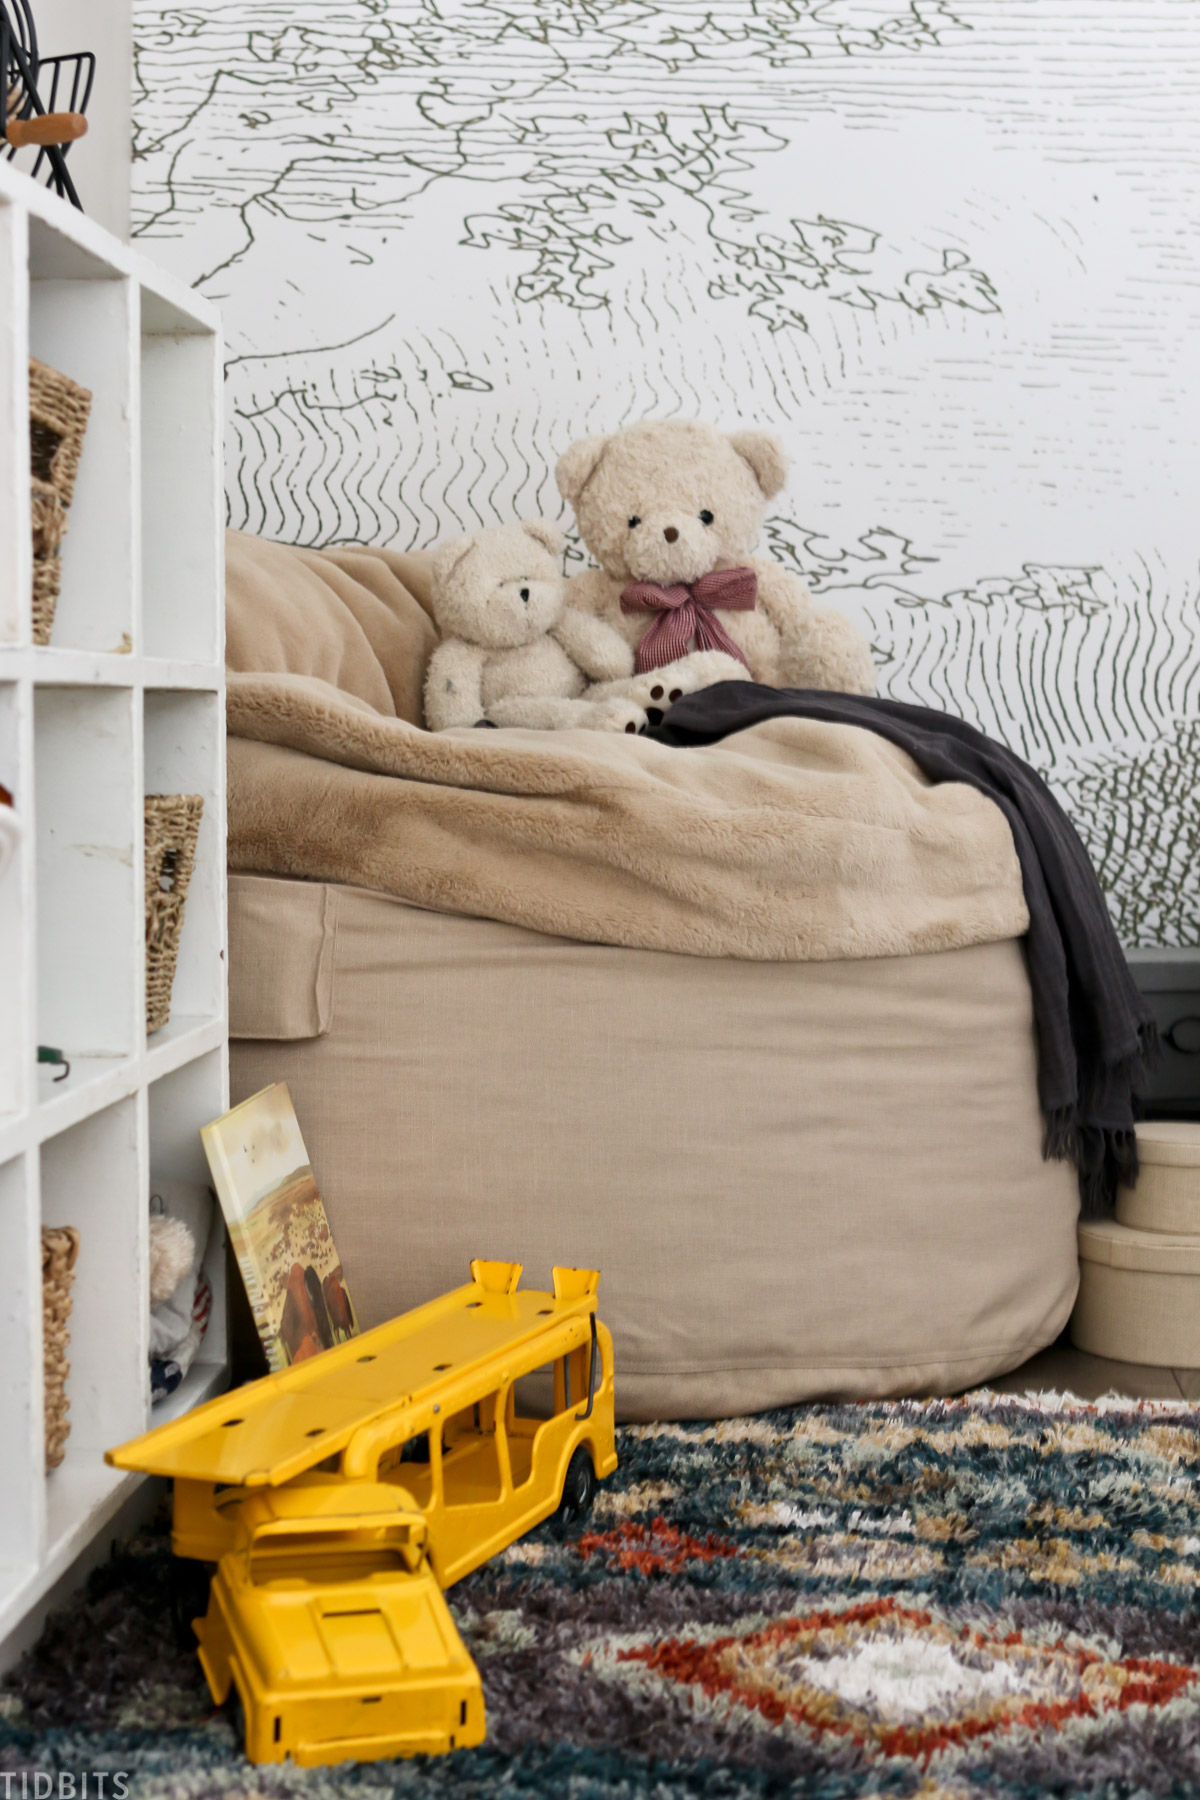 bean bag with teddy bears on top and toy truck next to it